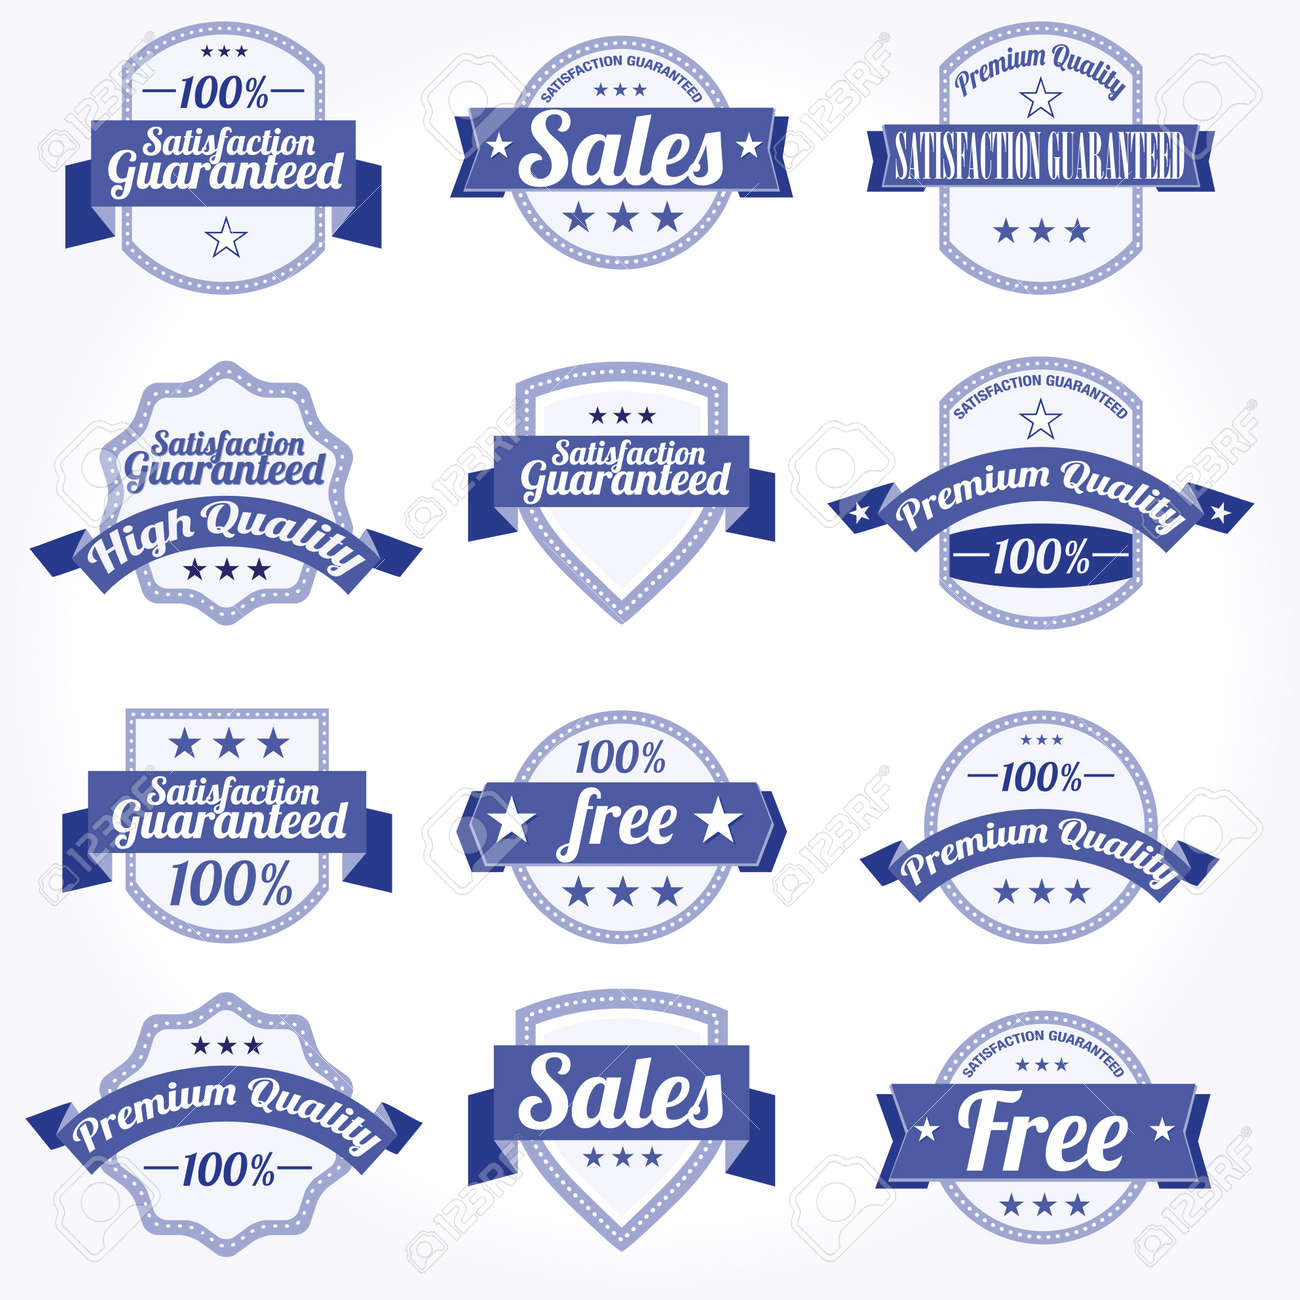 Premium high Quality sales free Labels with retro design Stock Vector - 11023847